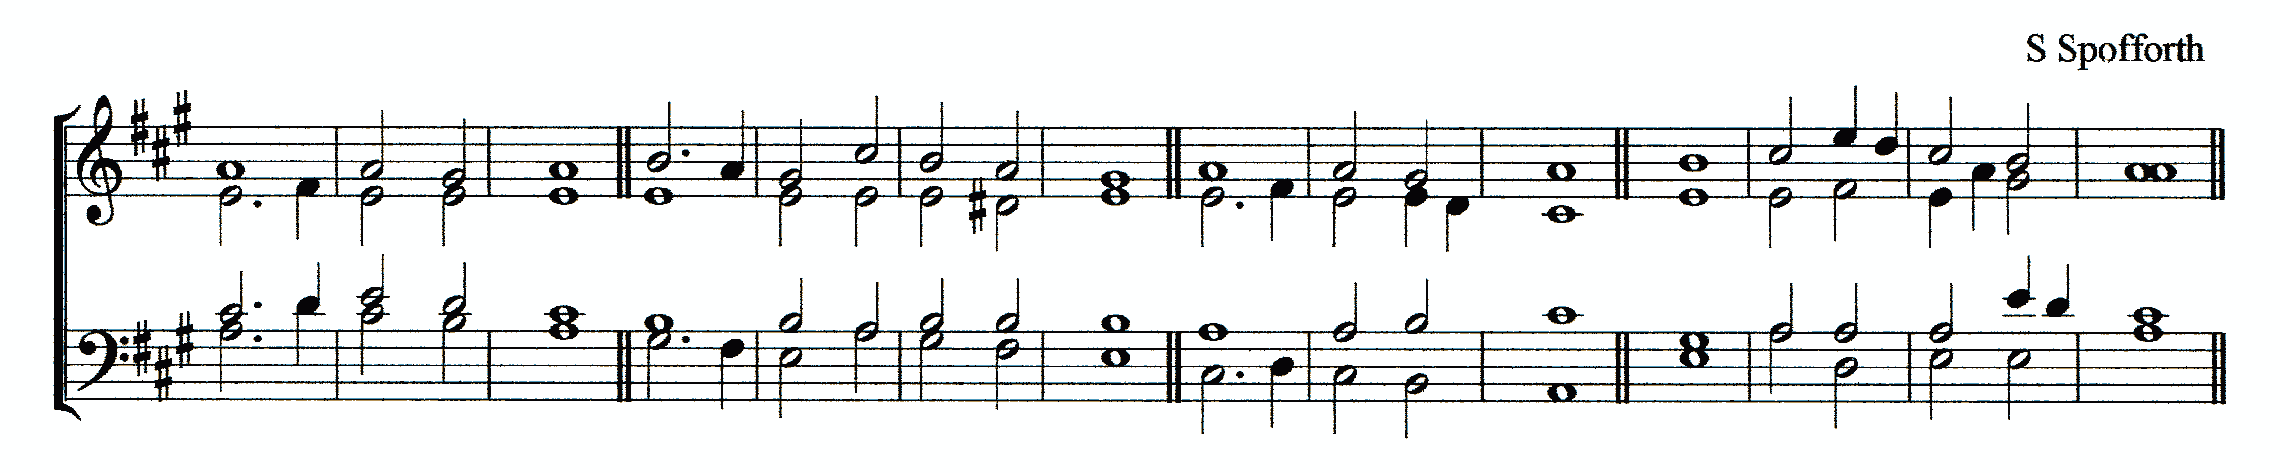 Double chant in A major by Samuel Spofforth